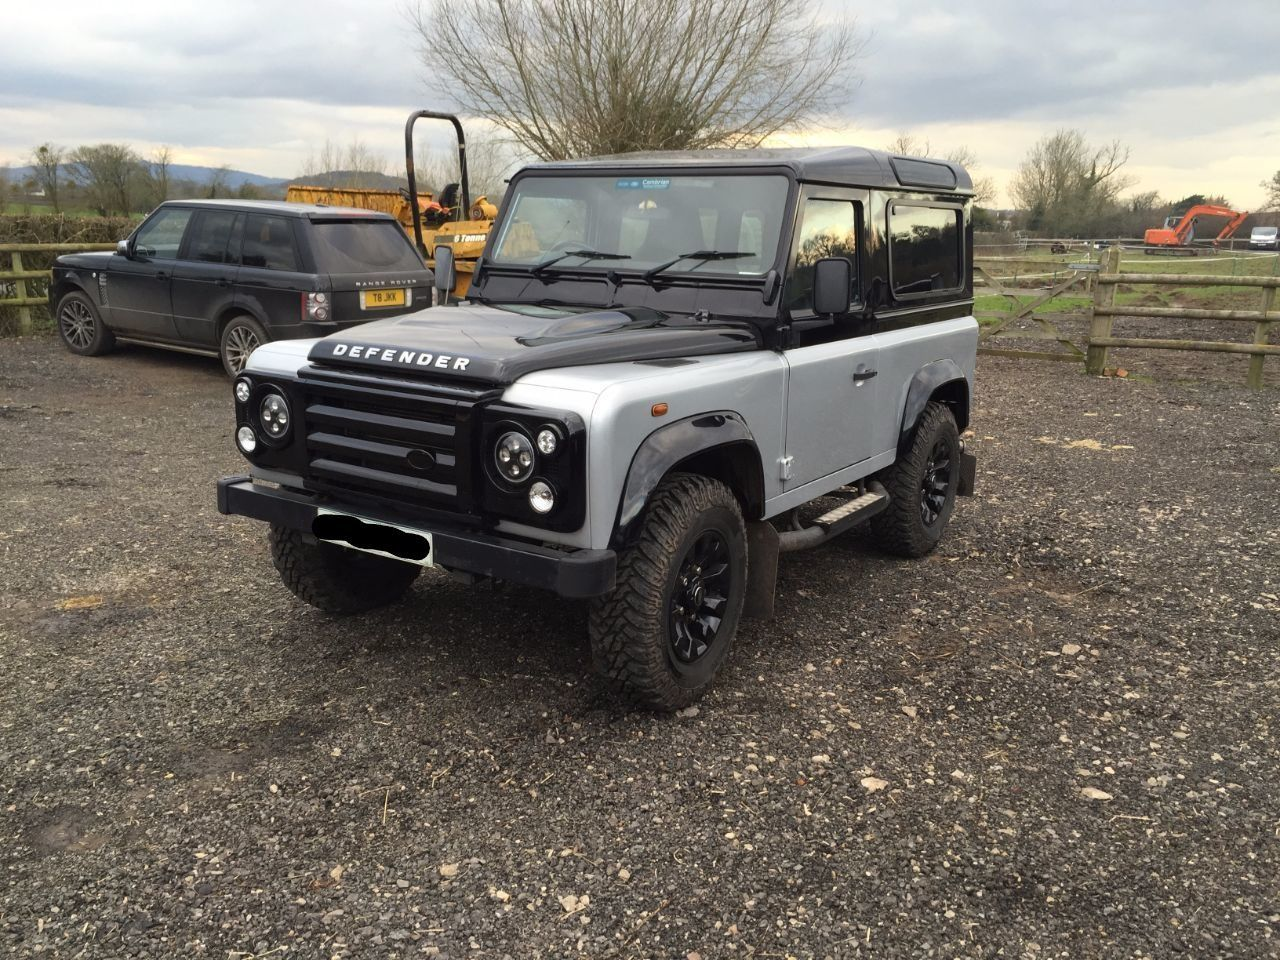 Land Rover Defender Autobiography TDCi [2.2] Four Wheel Drive Diesel Silver